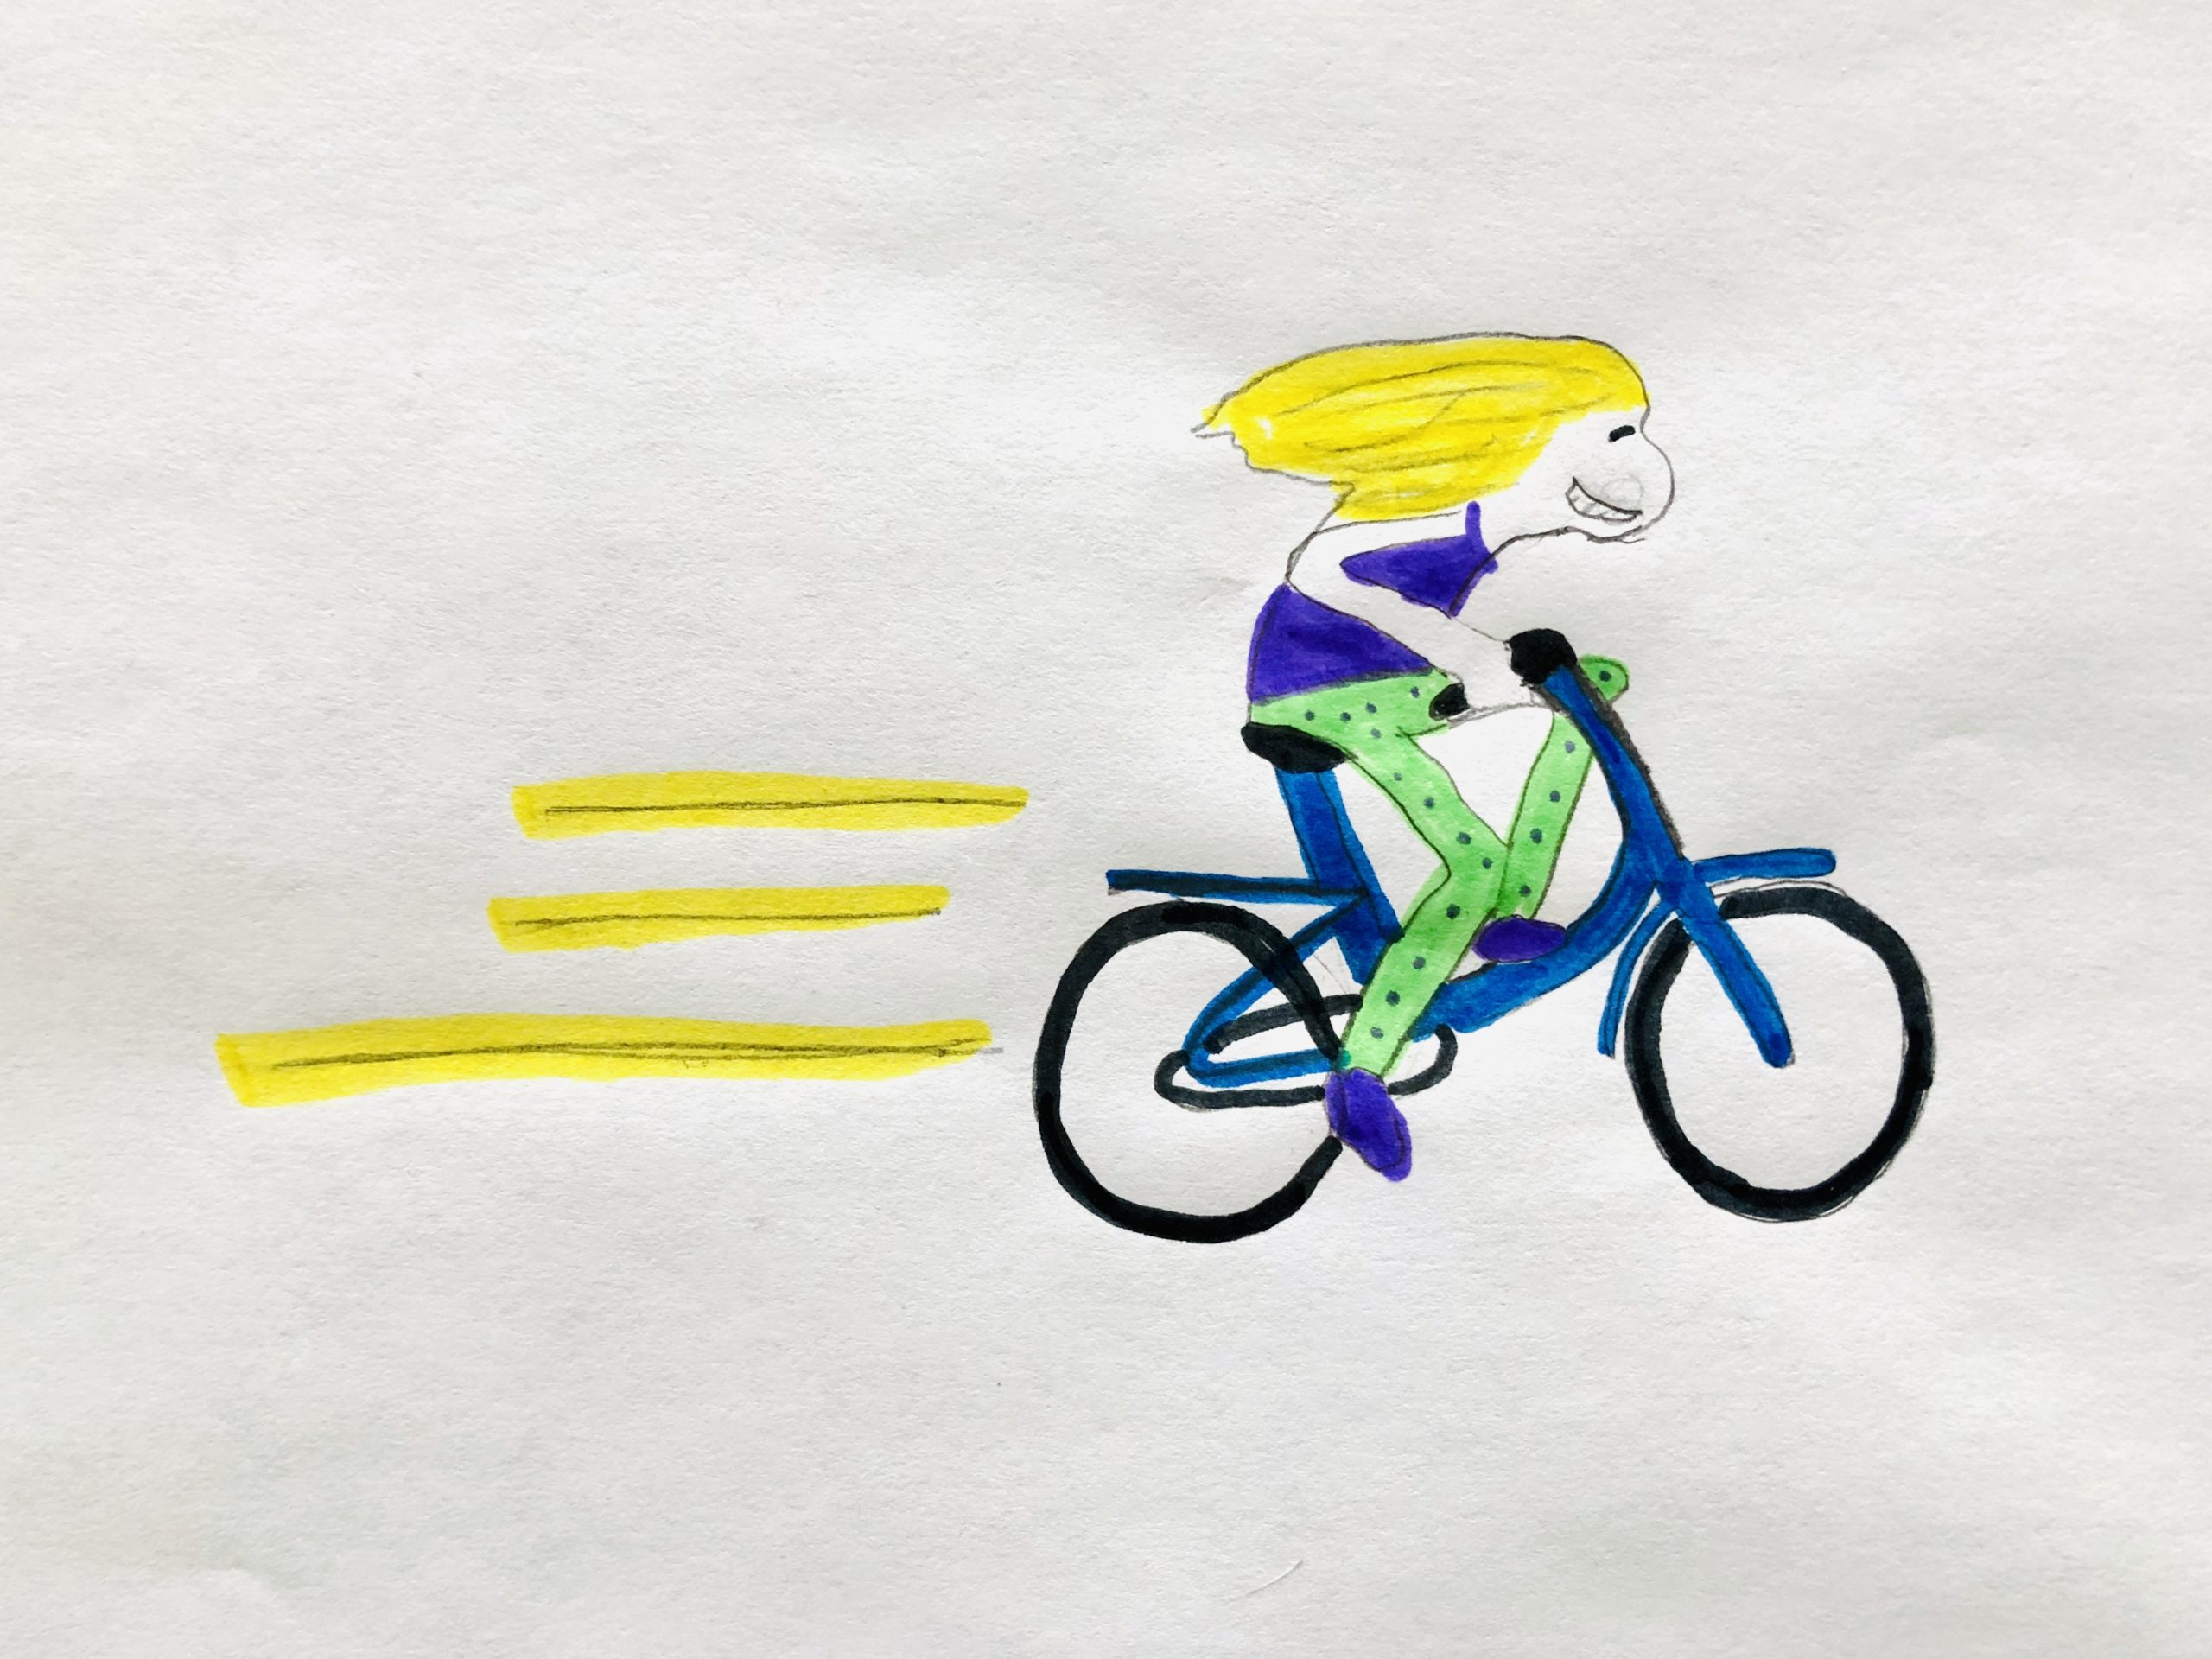 A blonde girl riding her bike super fast in the funny story for kids.